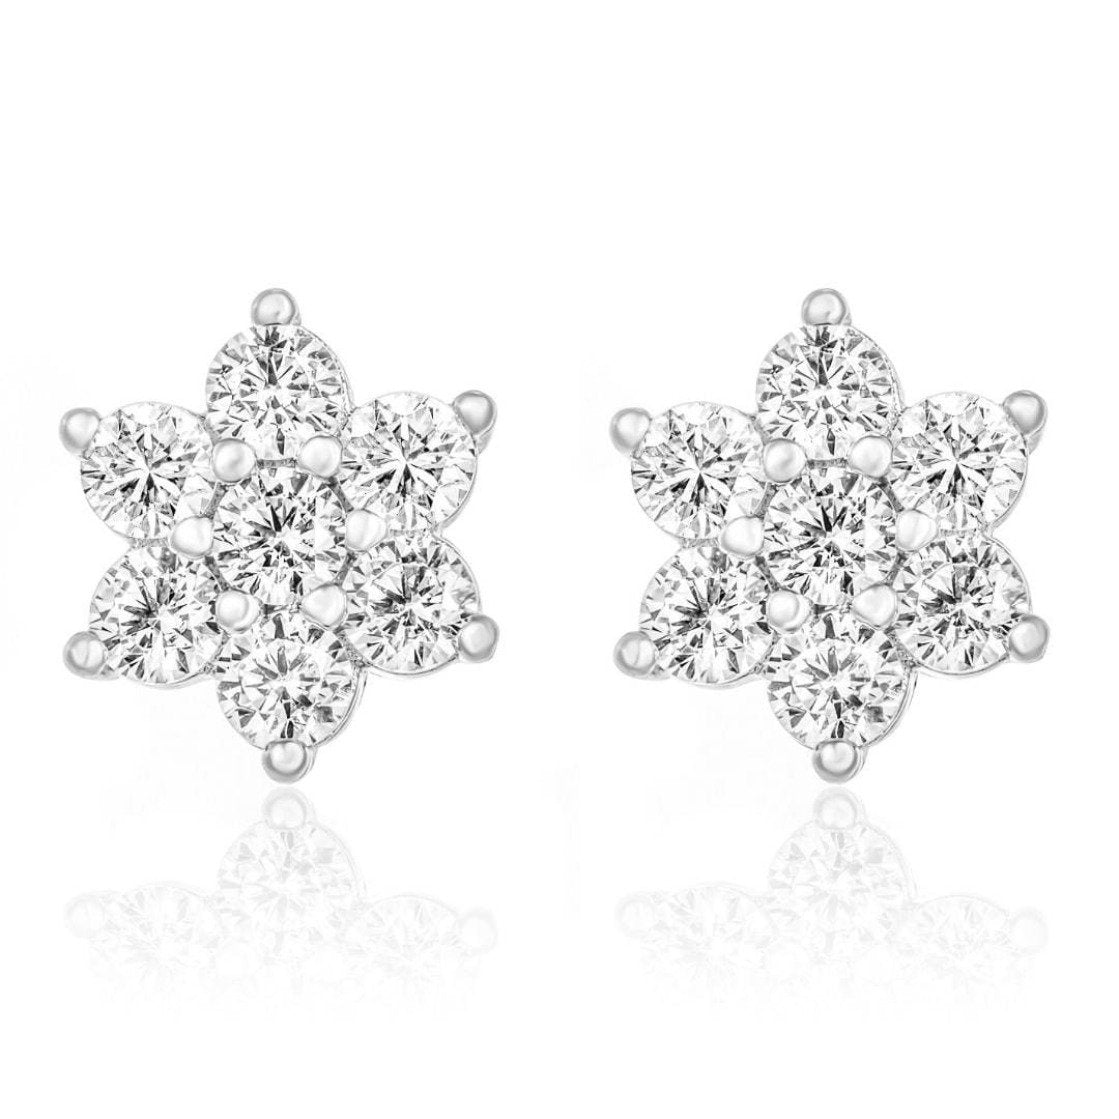 Snowflake Stud Earrings/18K White Gold & Cubic Zirconia - infinityXinfinity.co.uk